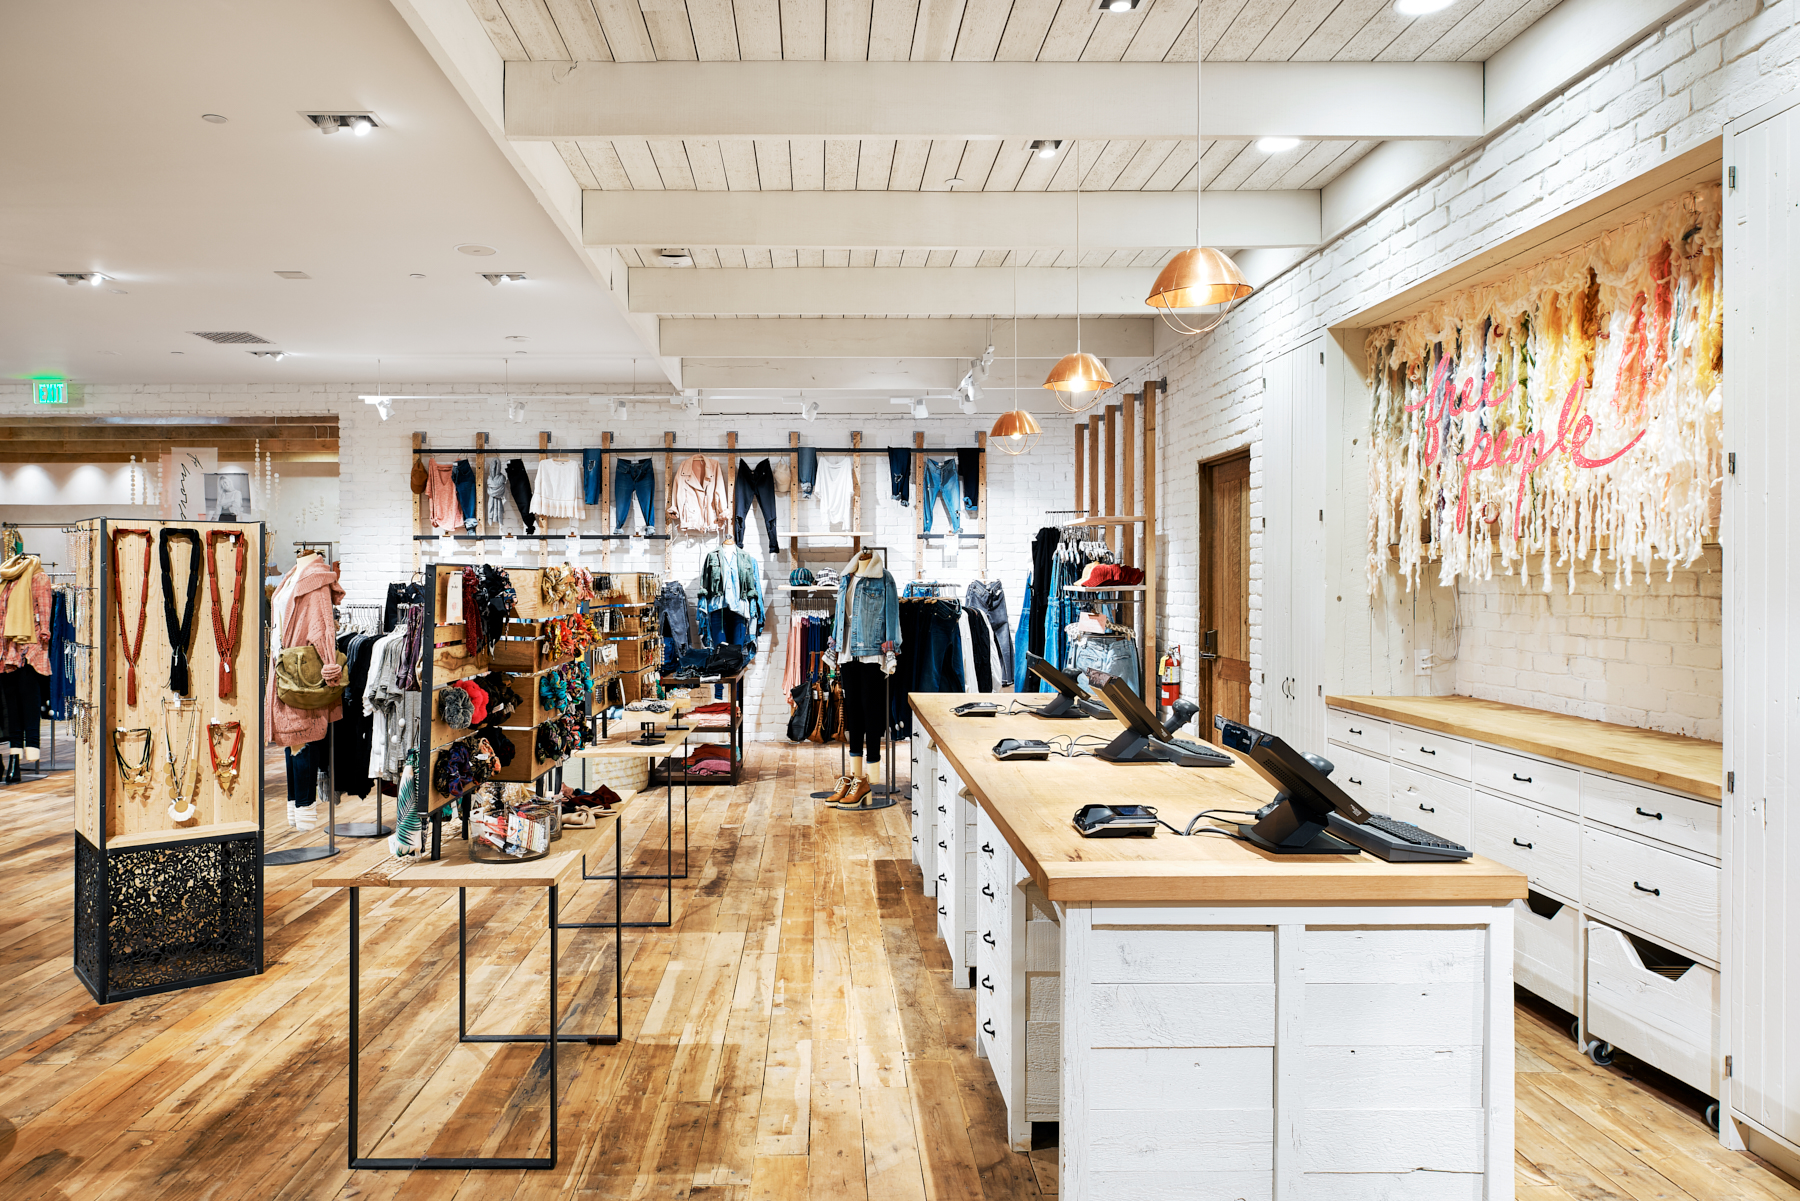 Checkout area of Free People in Edina, Minnesota, created in collaboration with AOR NewStudio Architecture